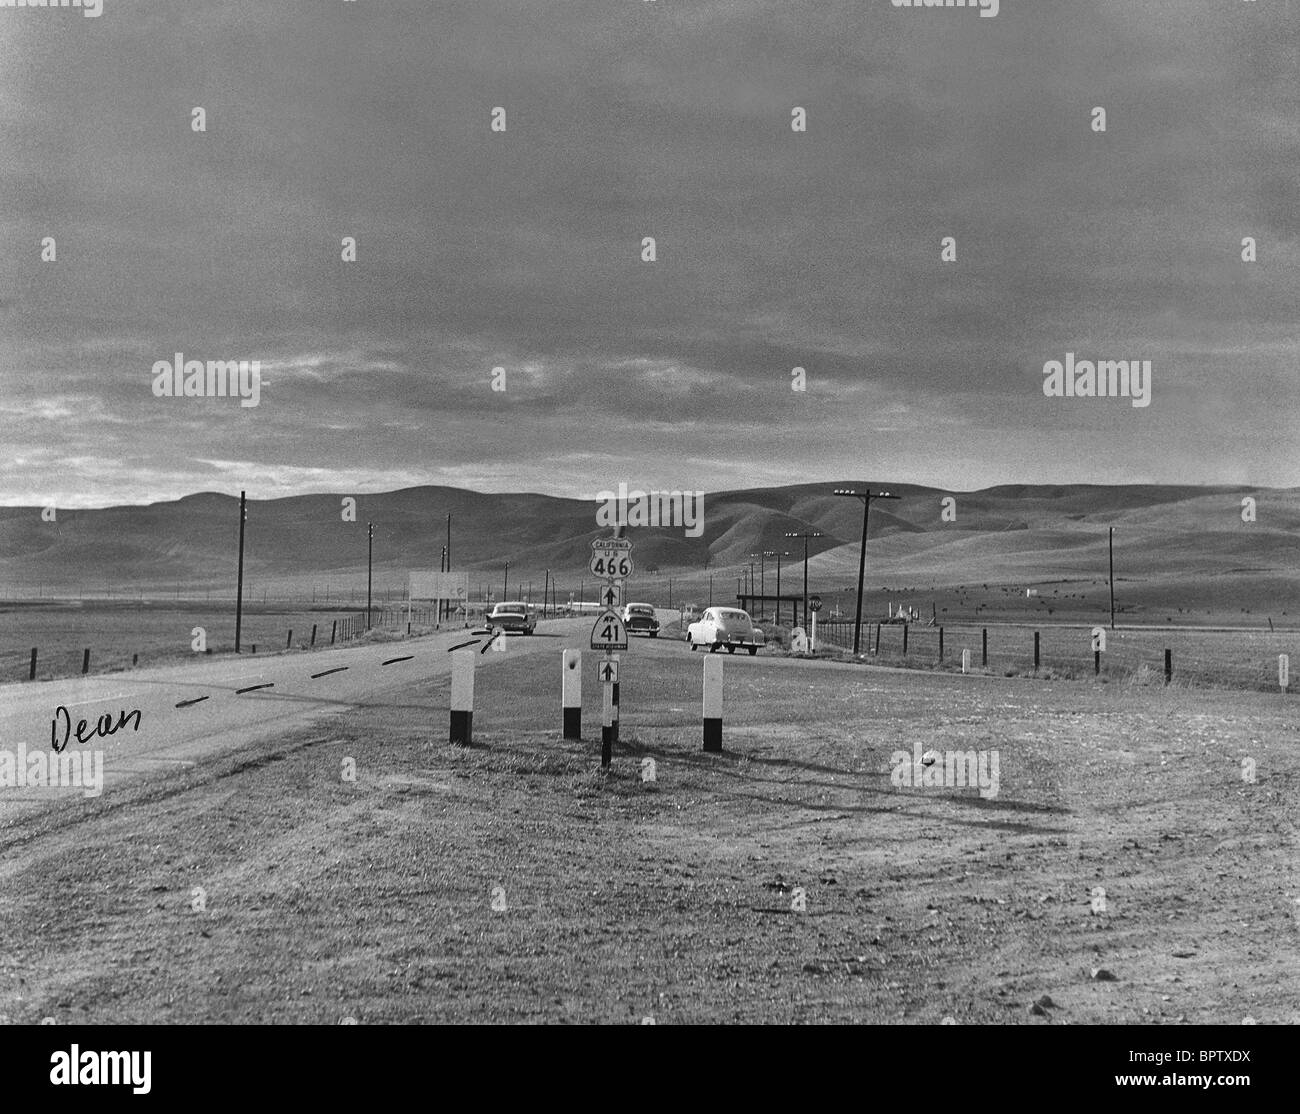 Scene Of James Dean Crash Scene Of James Dean S Car Crash 1955 Stock Photo 31280422 Alamy